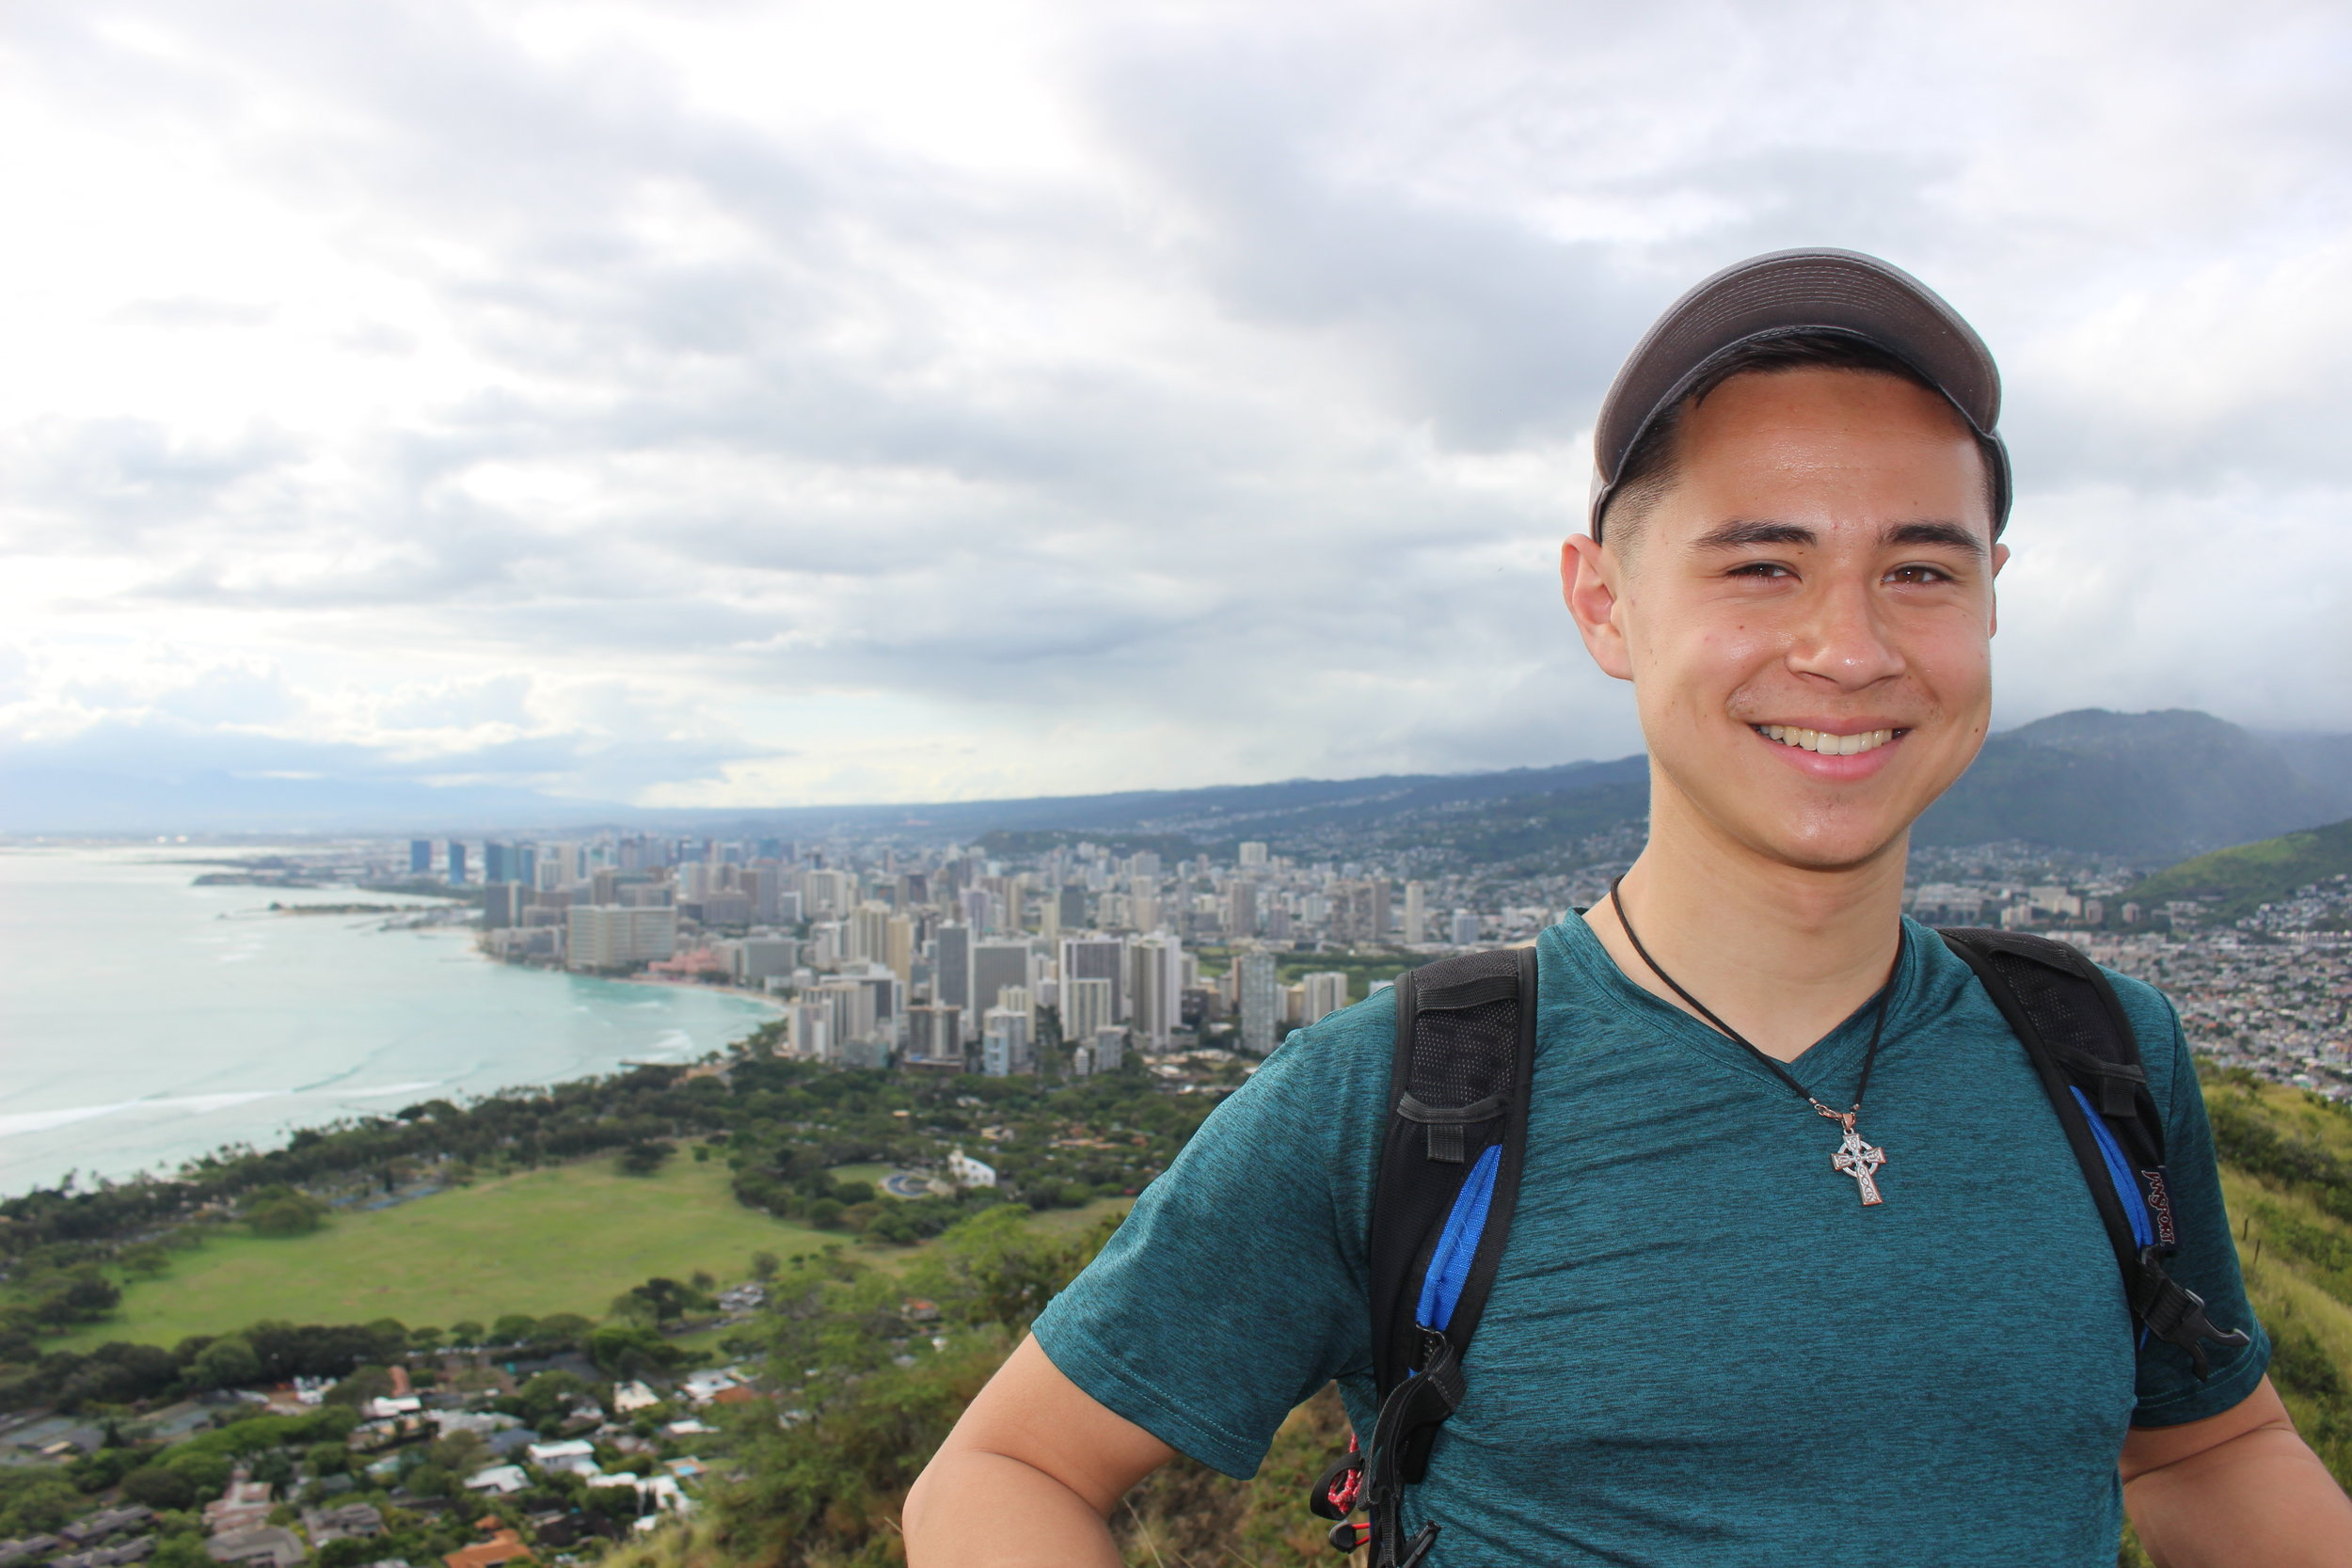 Liam '21 after hiking Diamond Head, with a view of Honolulu